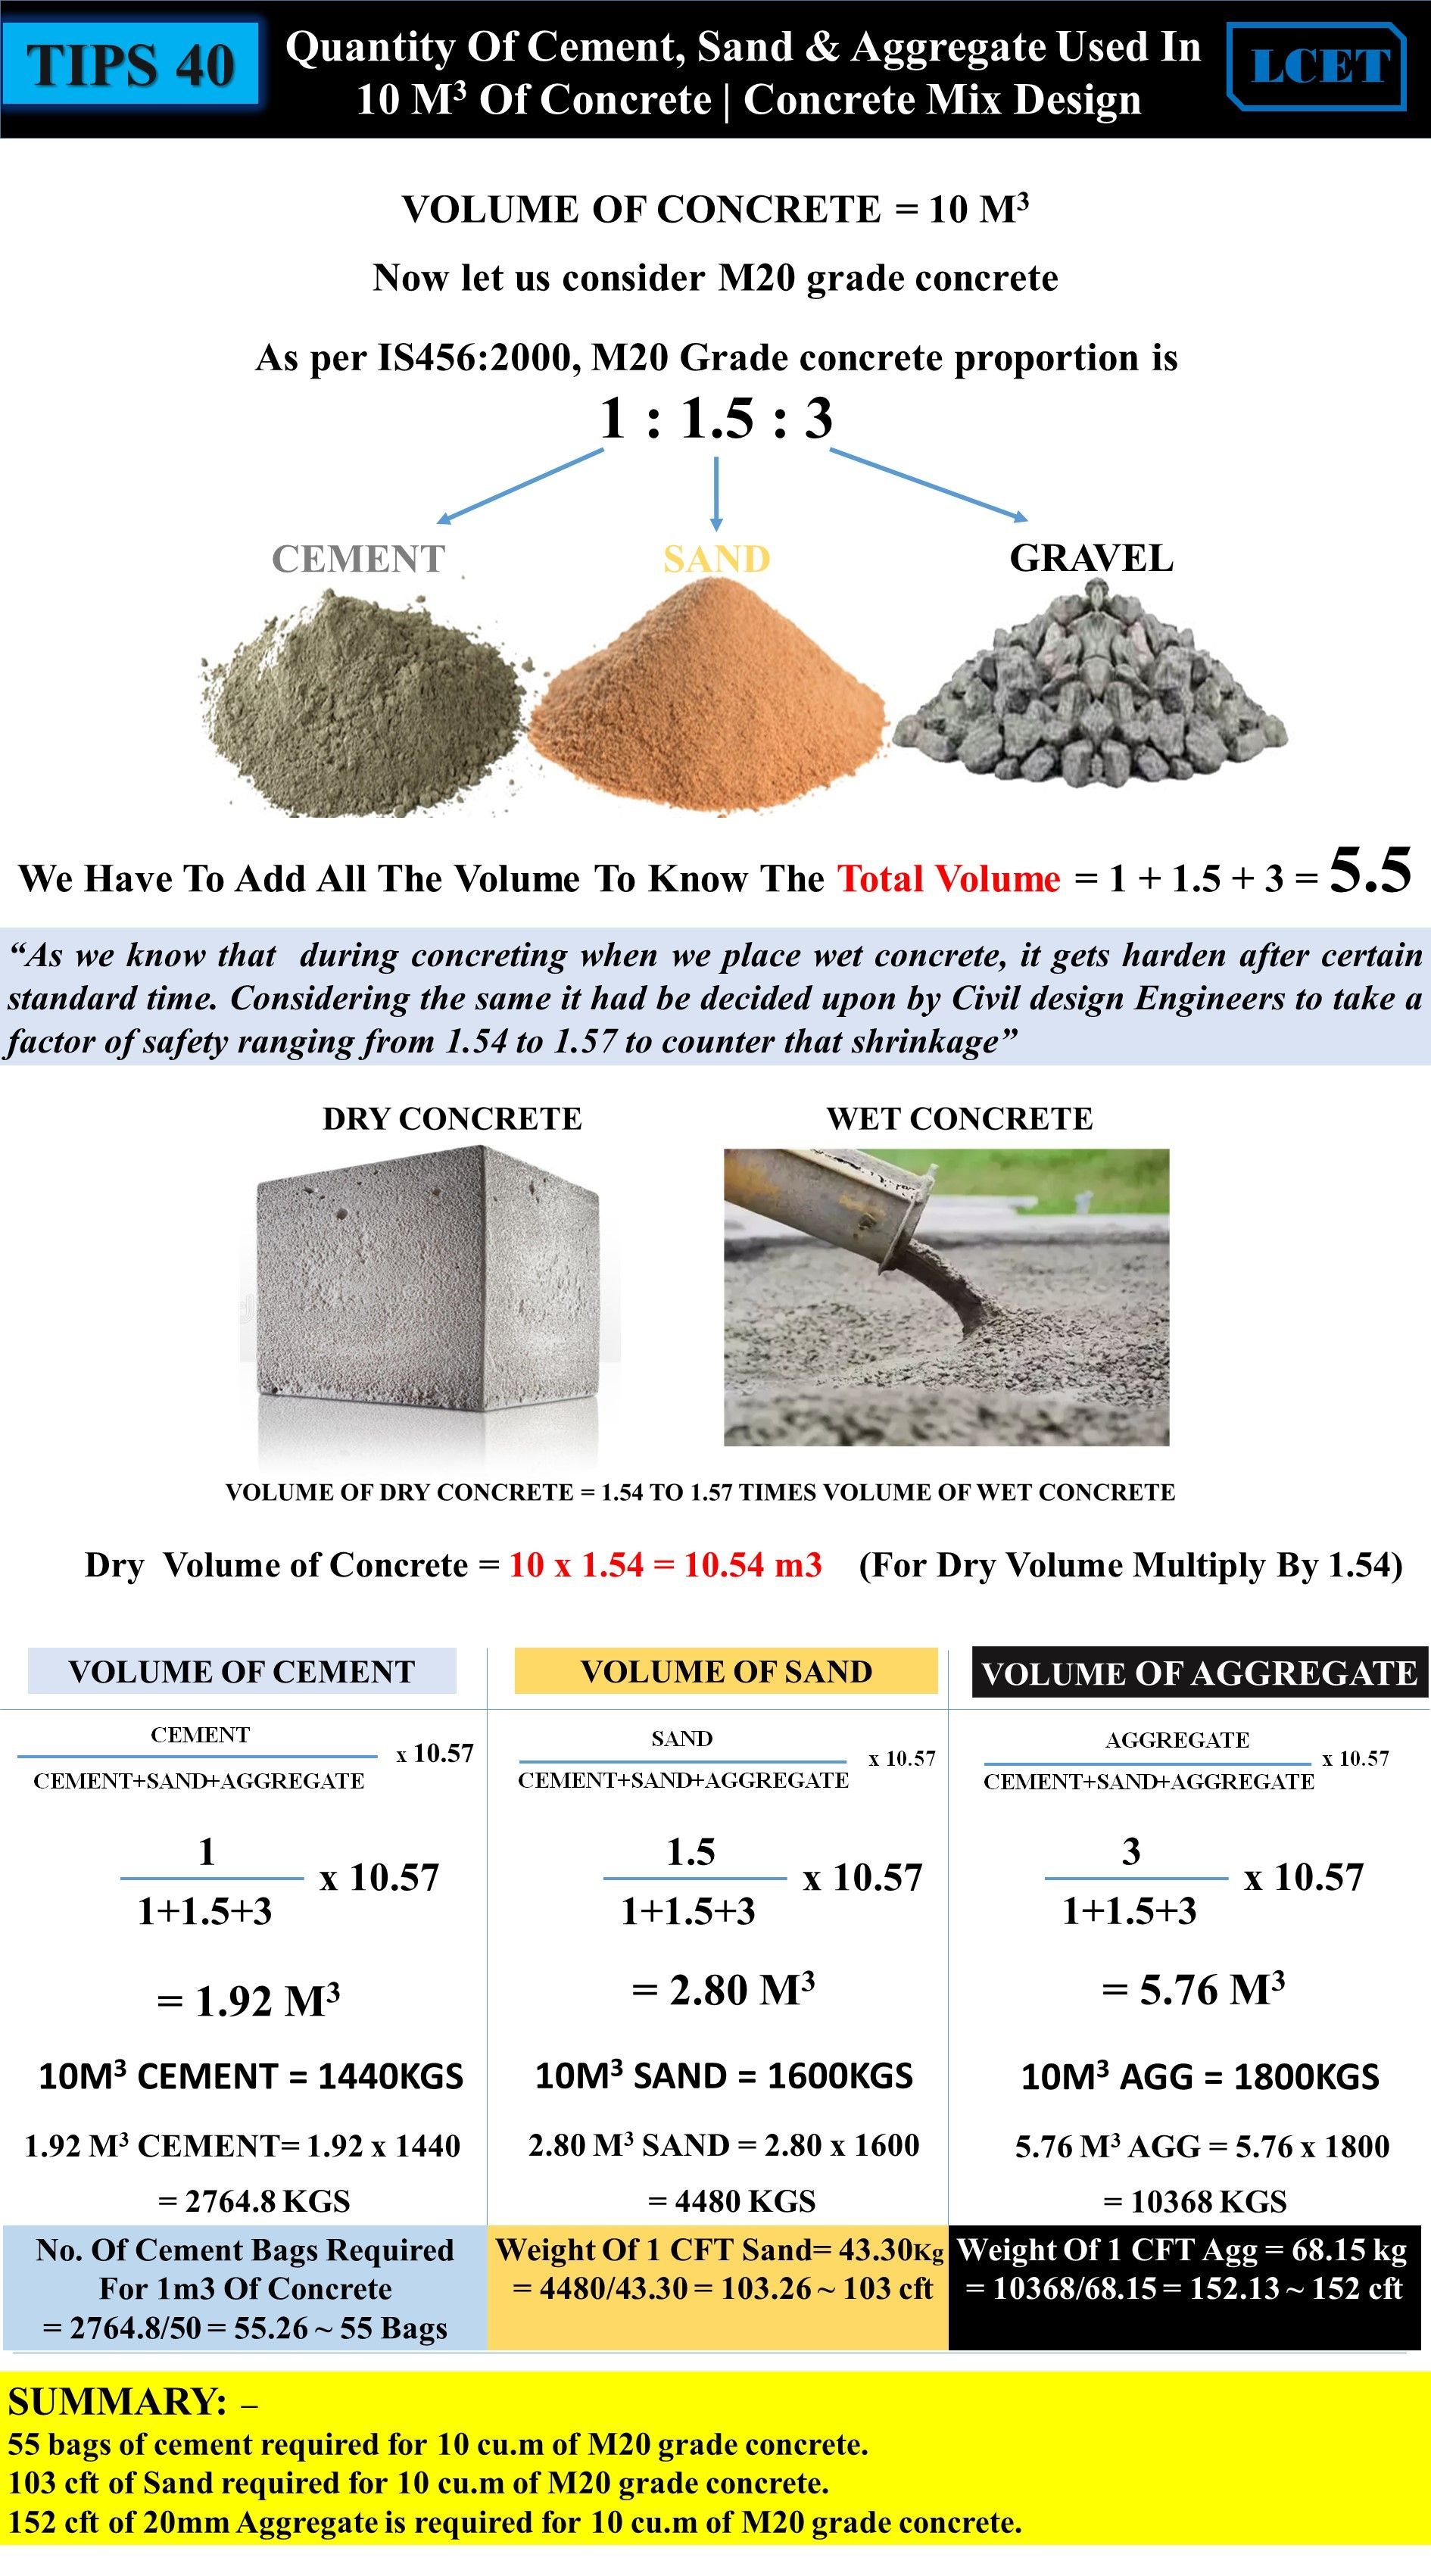 Tips 40 Quantity Of Cement Sand Aggregate Used In 10 M3 Of Concrete Concrete Mix Design In 2020 Concrete Mix Design Concrete Mixes Civil Engineering Design